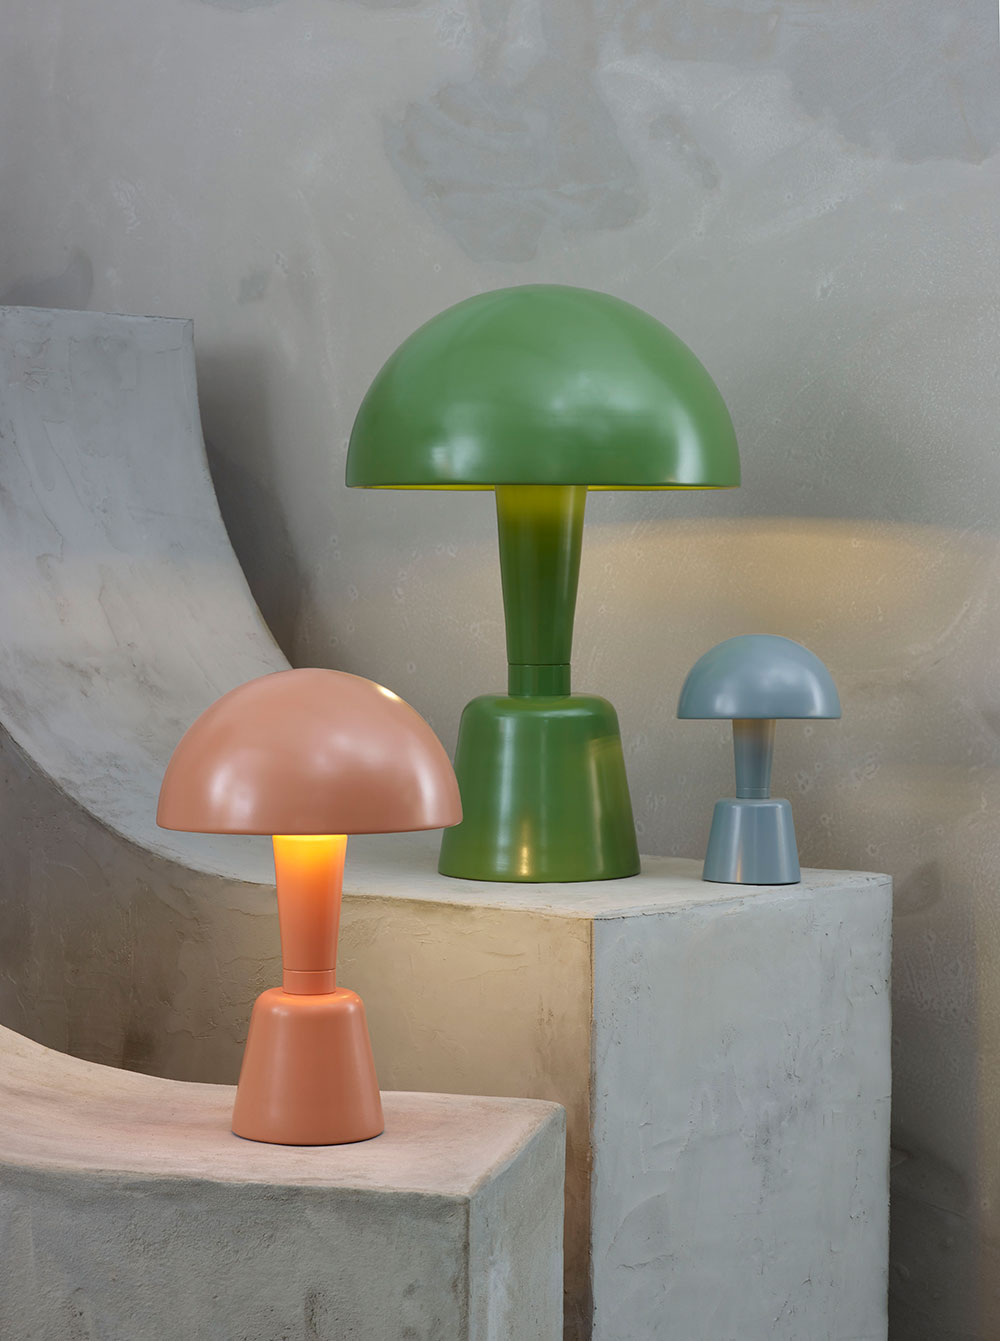 Powder Coated Cep table lamps by Collier Webb